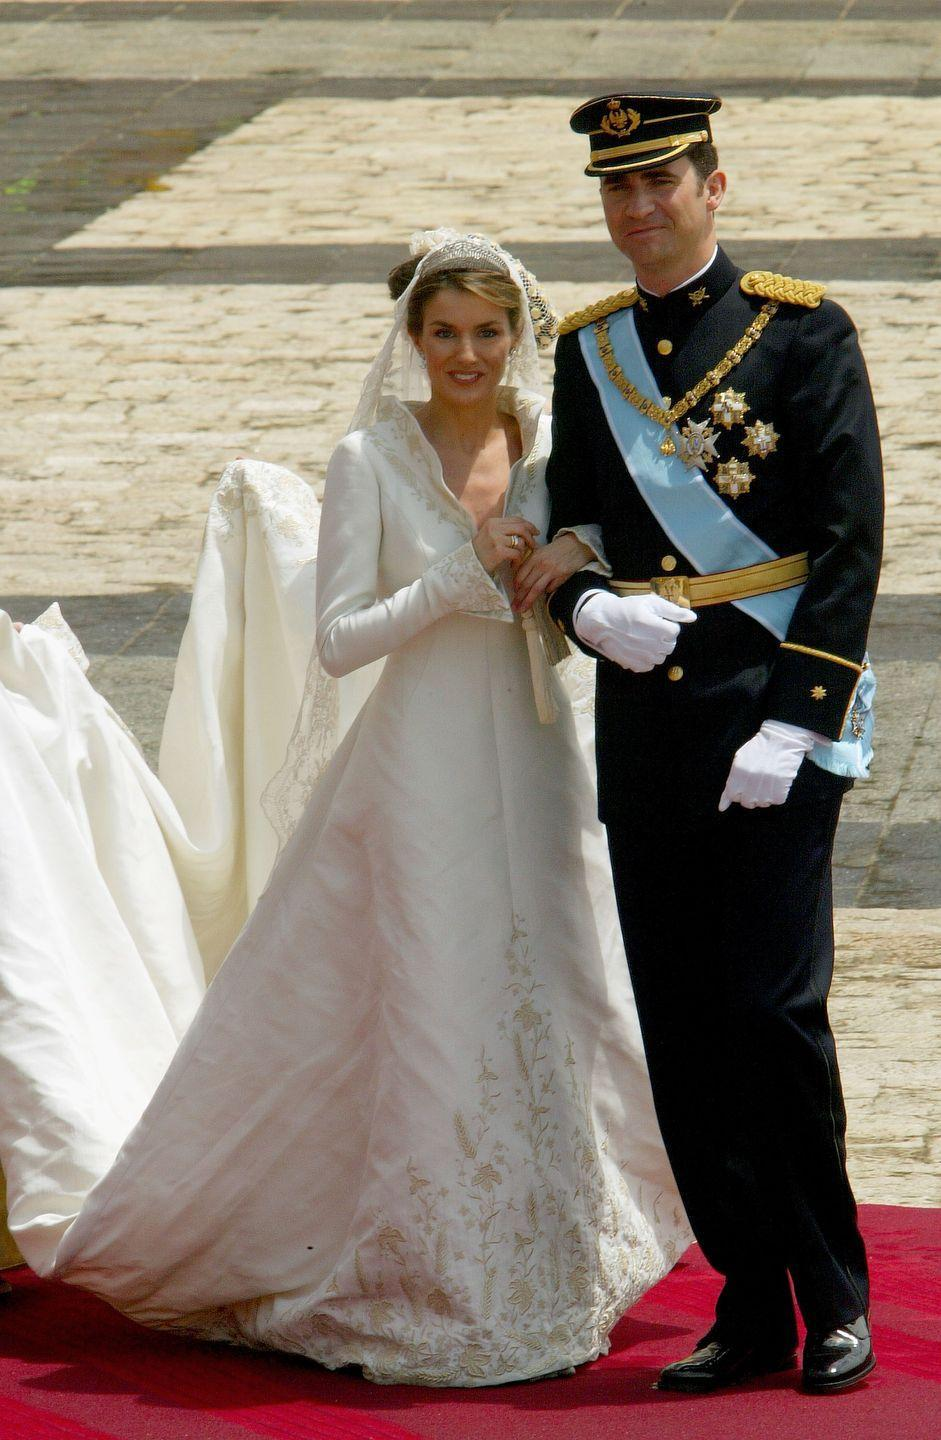 "<p><a href=""https://www.townandcountrymag.com/society/tradition/g10297690/queen-letizia-style/"" rel=""nofollow noopener"" target=""_blank"" data-ylk=""slk:Queen Letizia Ortiz of Spain"" class=""link rapid-noclick-resp"">Queen Letizia Ortiz of Spain</a> married King Felipe in the <span class=""redactor-unlink"">Cathedral Santa María la Real de la Almudena</span> in Madrid, on May 22, 2004. Her wedding gown, designed by Manuel Pertegaz, consists of natural silk, woven with silver and gold thread, and a 15-foot train.</p>"